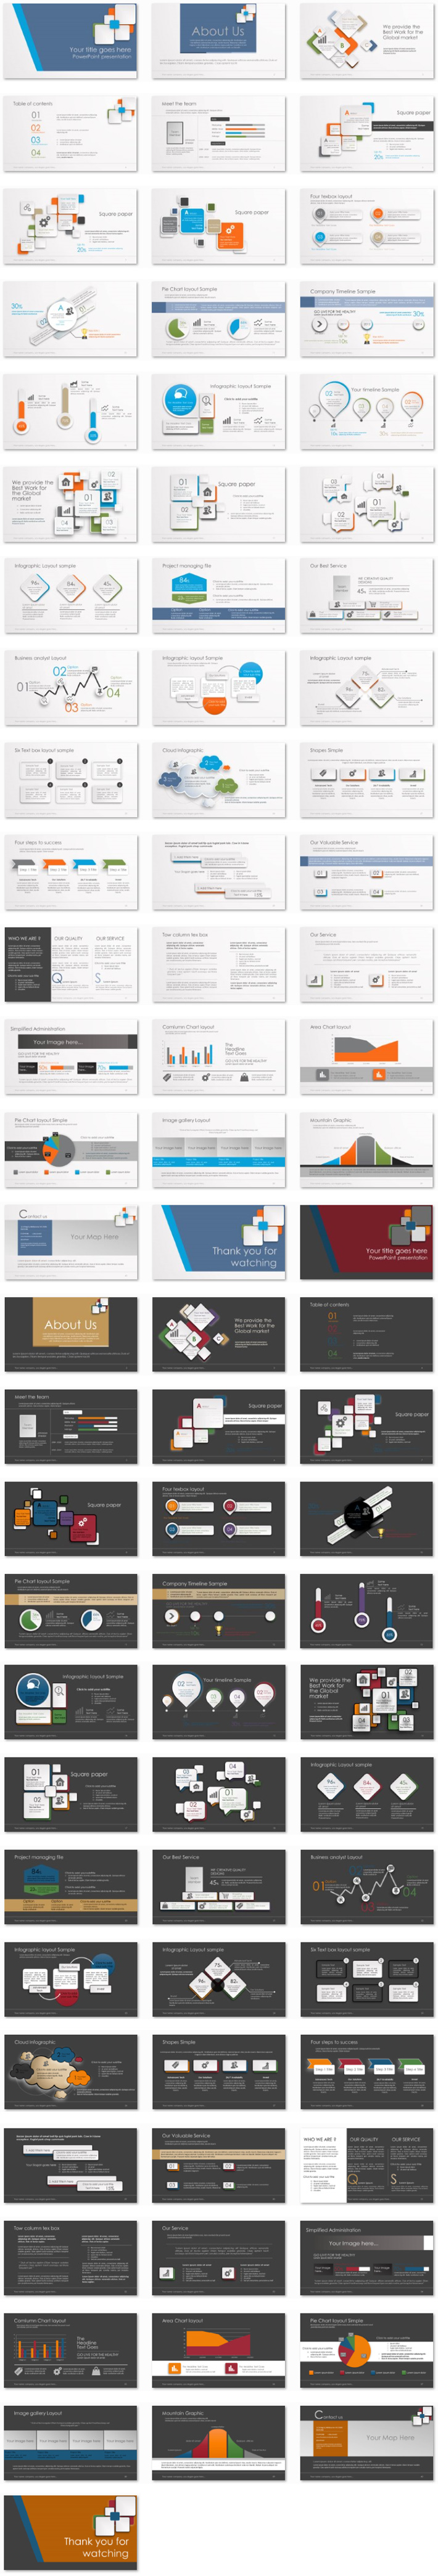 Power Presentation: 3D Paper Squares PPT Premium PowerPoint Presentation Template Slide Set